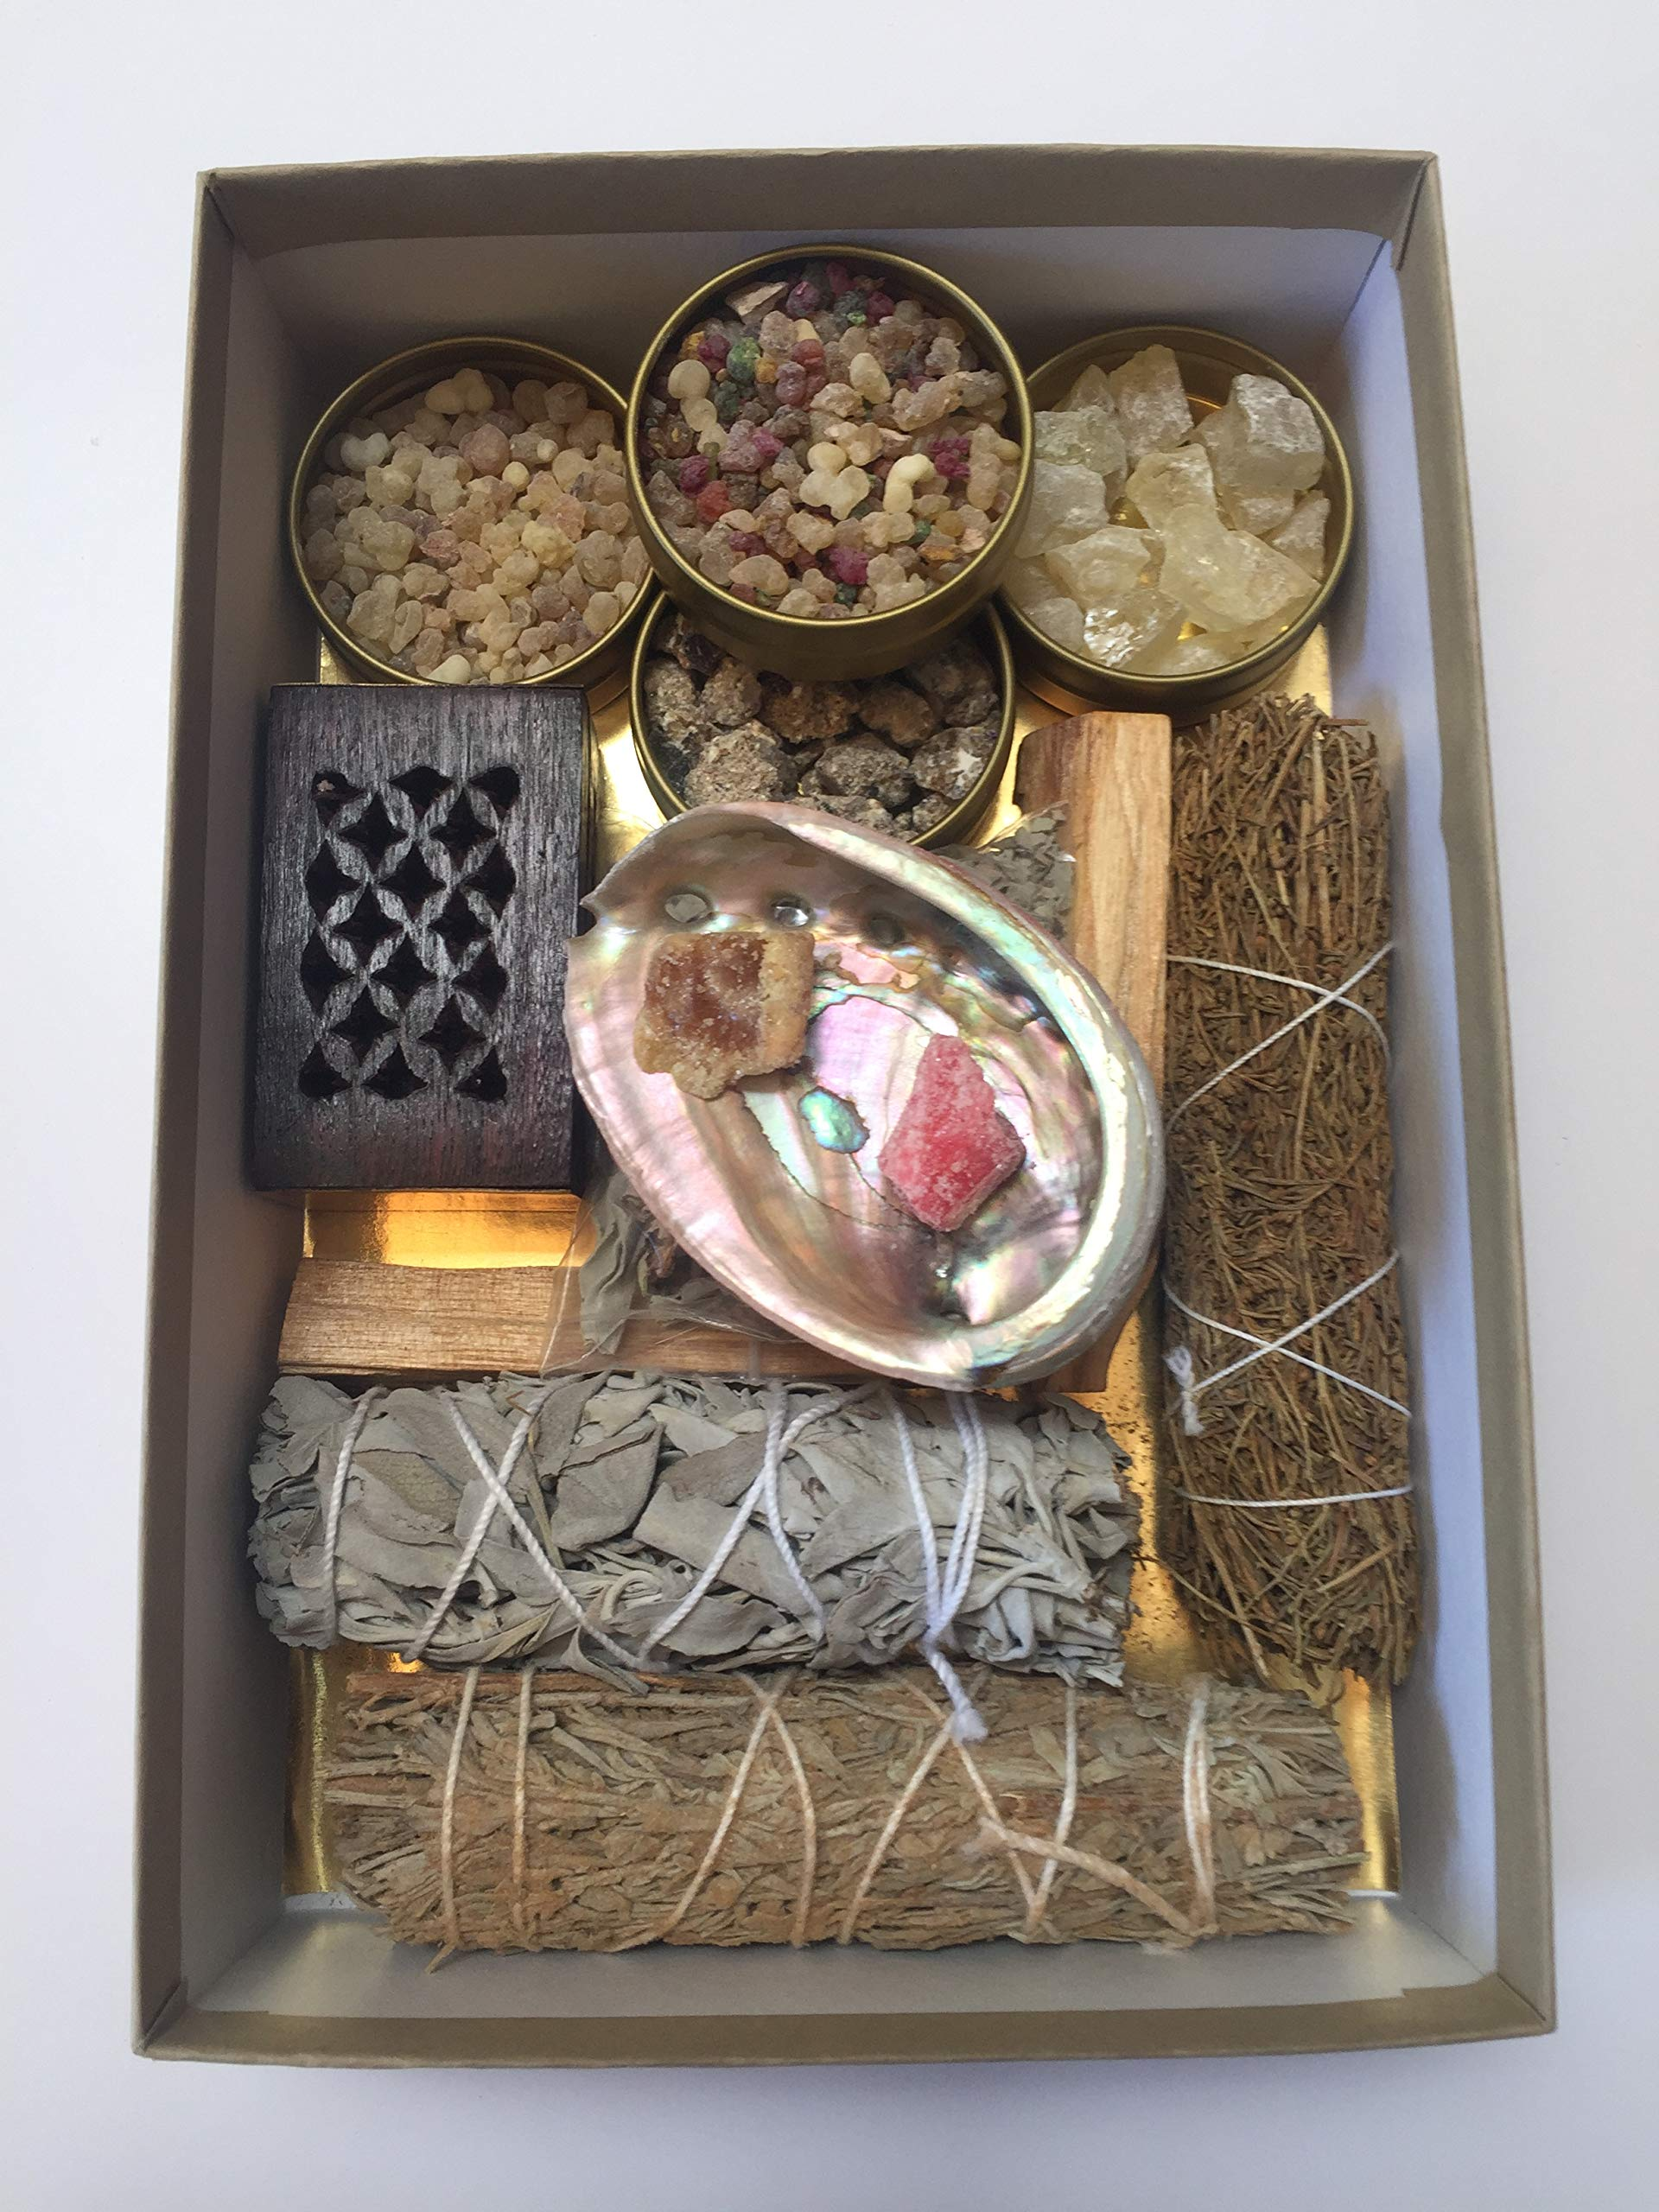 Resin Incense and Sage Smudges Variety Gift Kit includes, Amber Resin, Rose Resin, White Copal, Mystical Benzoin, Frankincense, White Sage Smudge, Desert Sage, Palo Santo Sticks and Abalone Shell by Sacred Scents For You (Image #5)